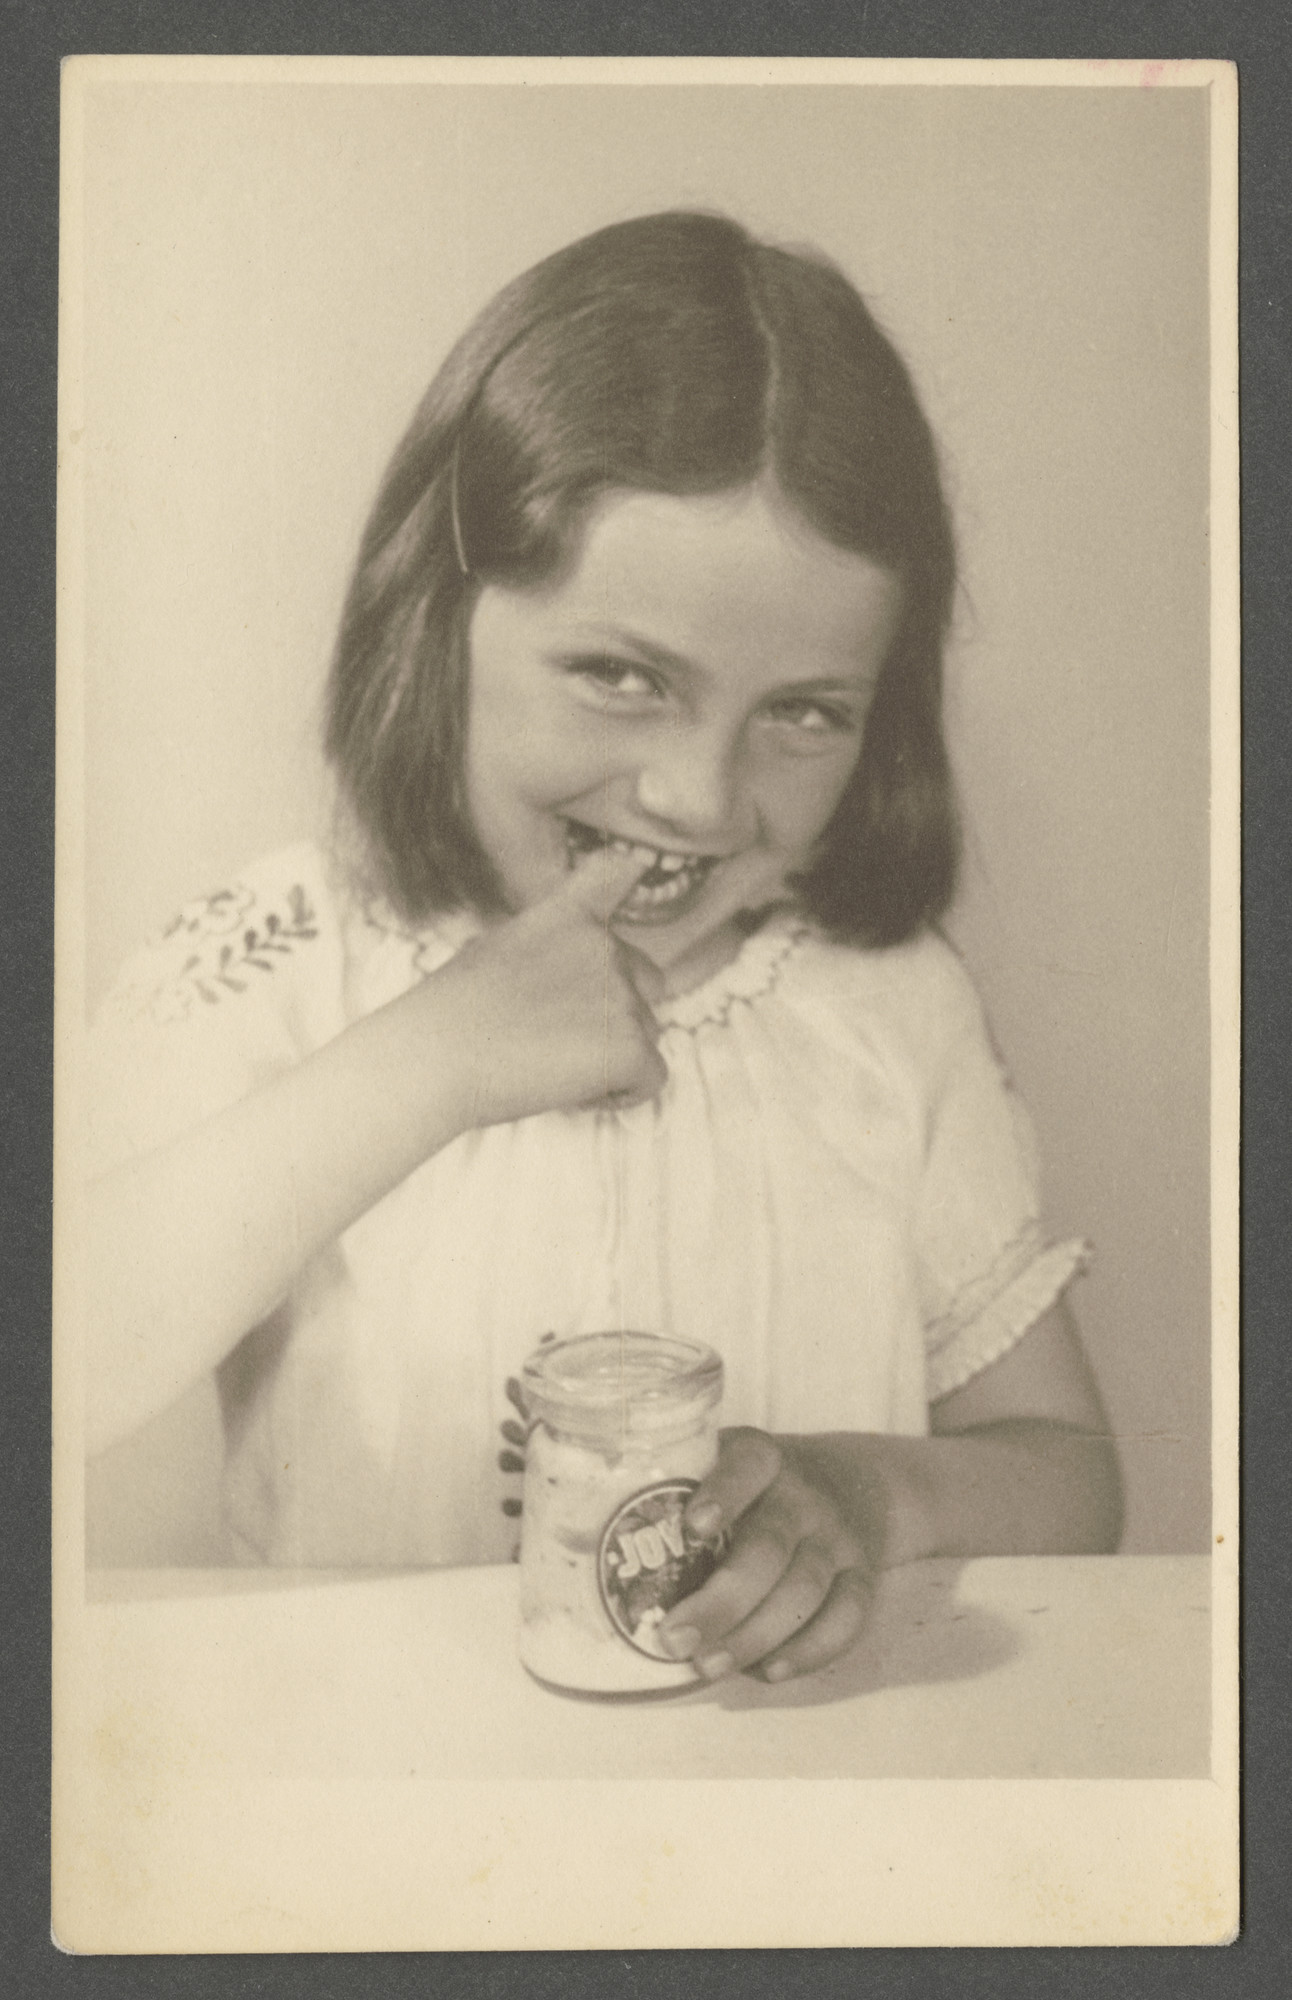 Renee Goldschmied is pictured in a photograph to be used in an advertisement for Jovo yogurt.